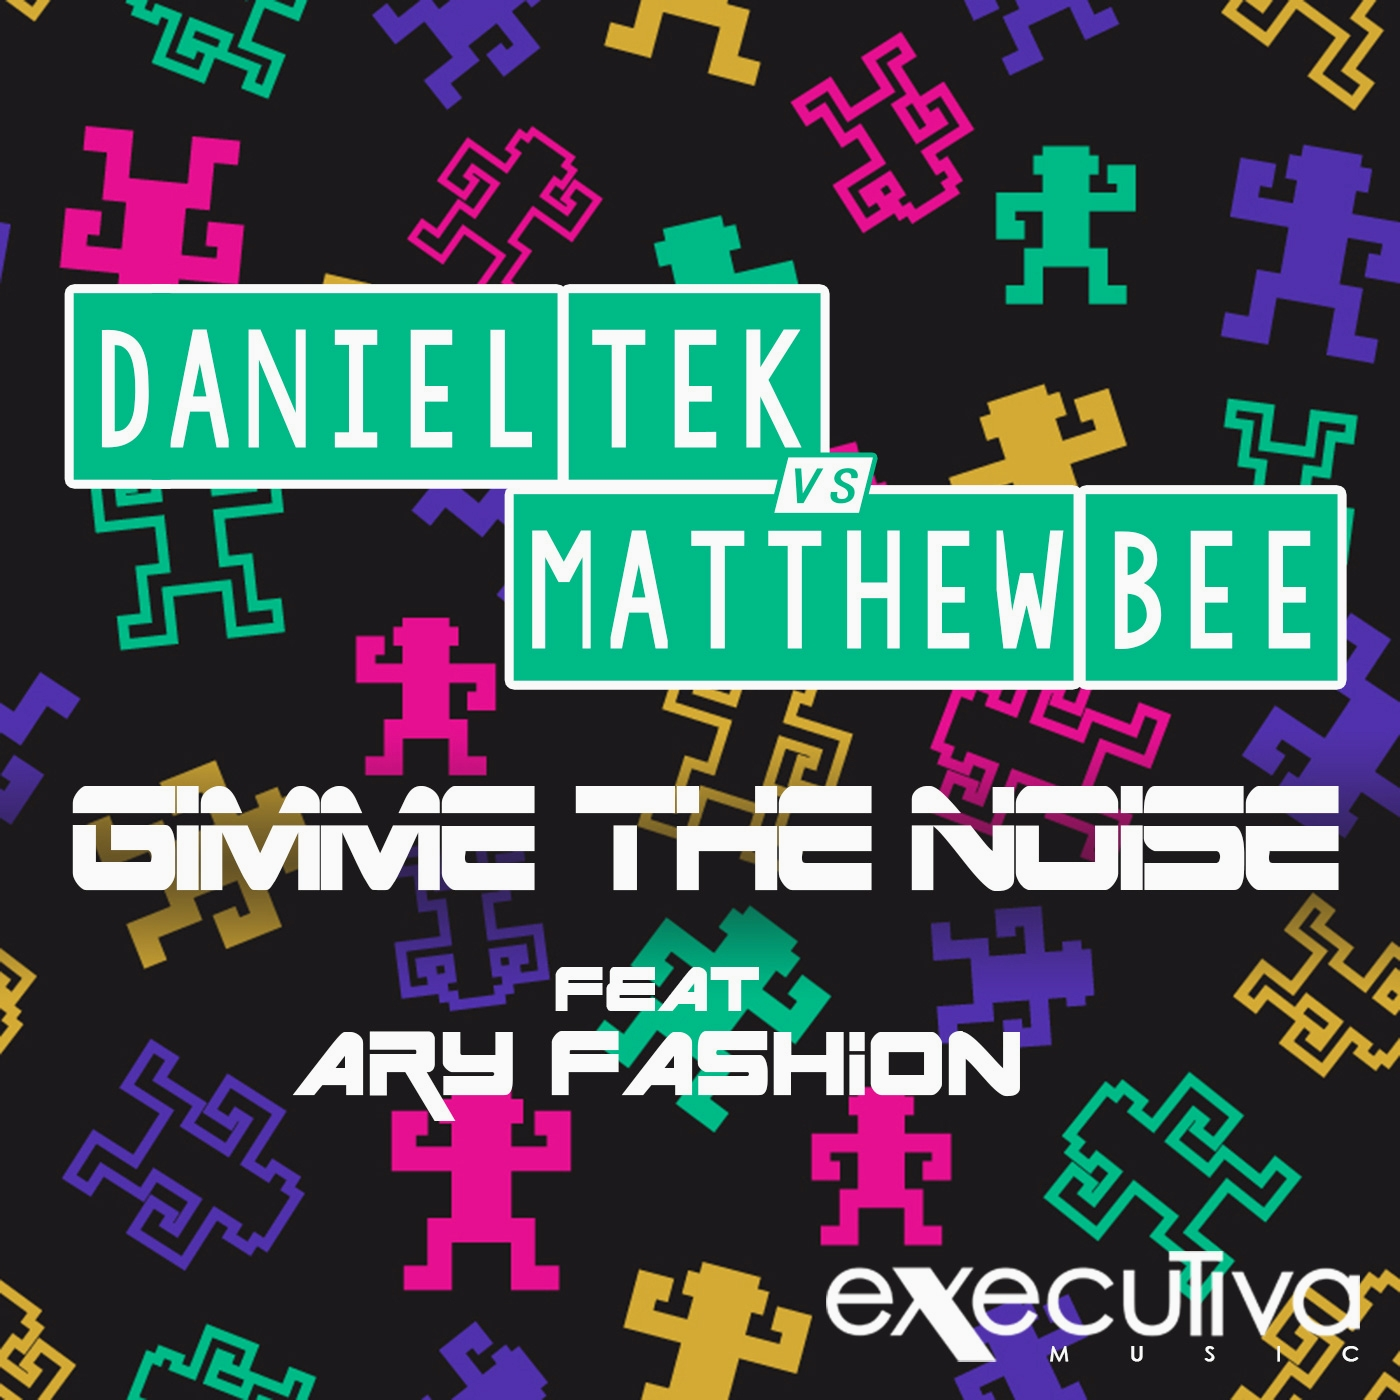 Daniel Tek & Matthew Bee - Gimme The Noise Feat. AryFashion (Better Matthew Remix)